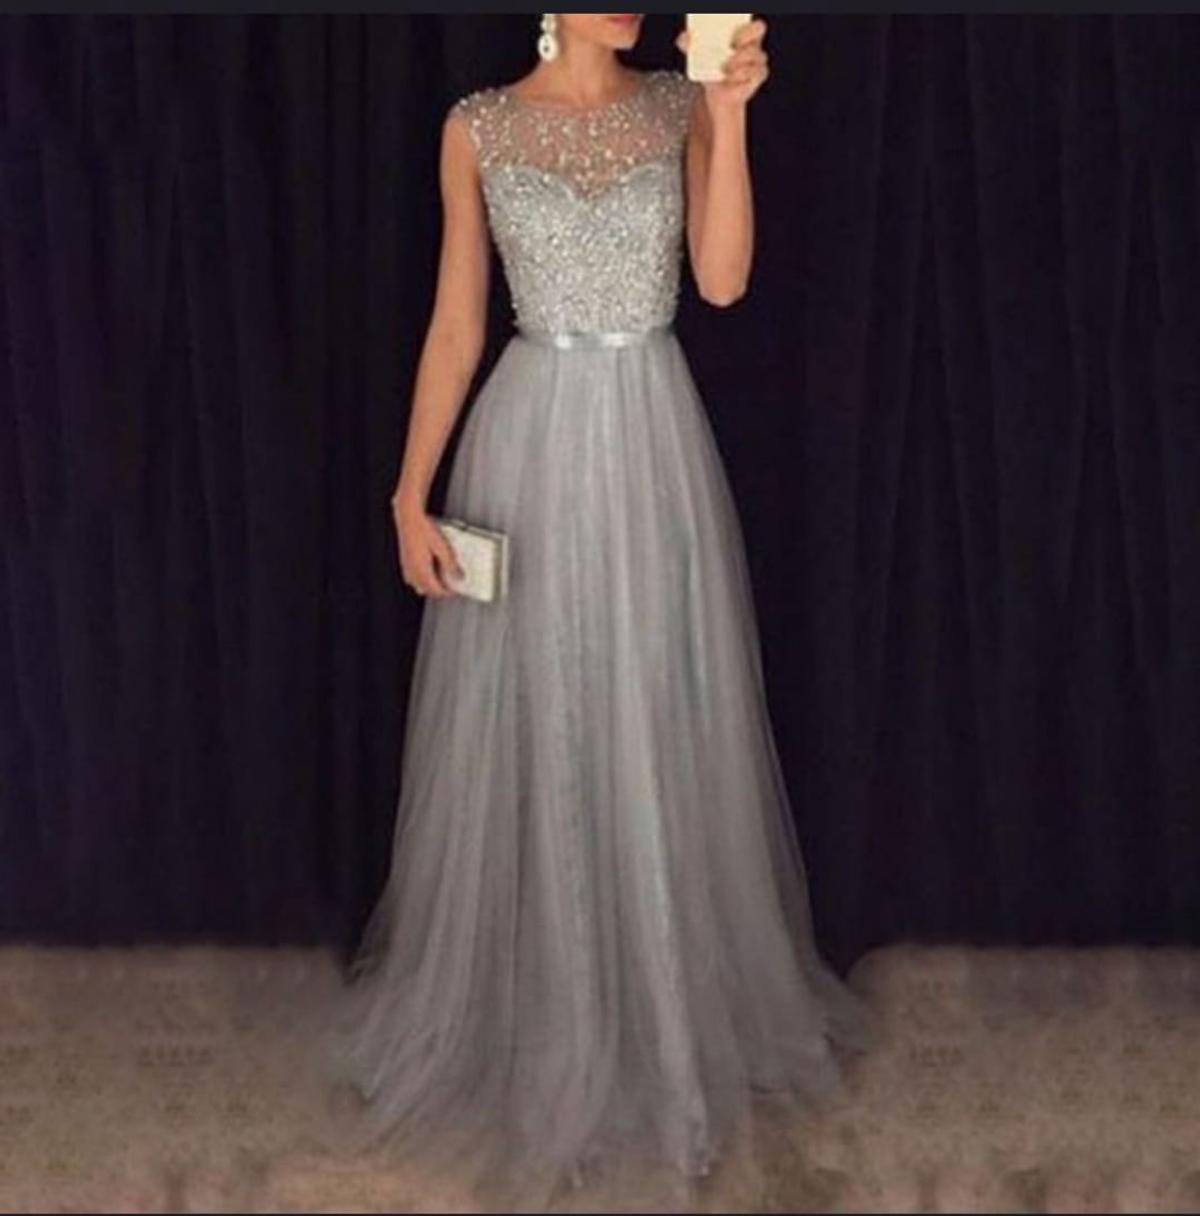 Abendkleid grau /silber in 14 Lampertheim for €14.14 for sale